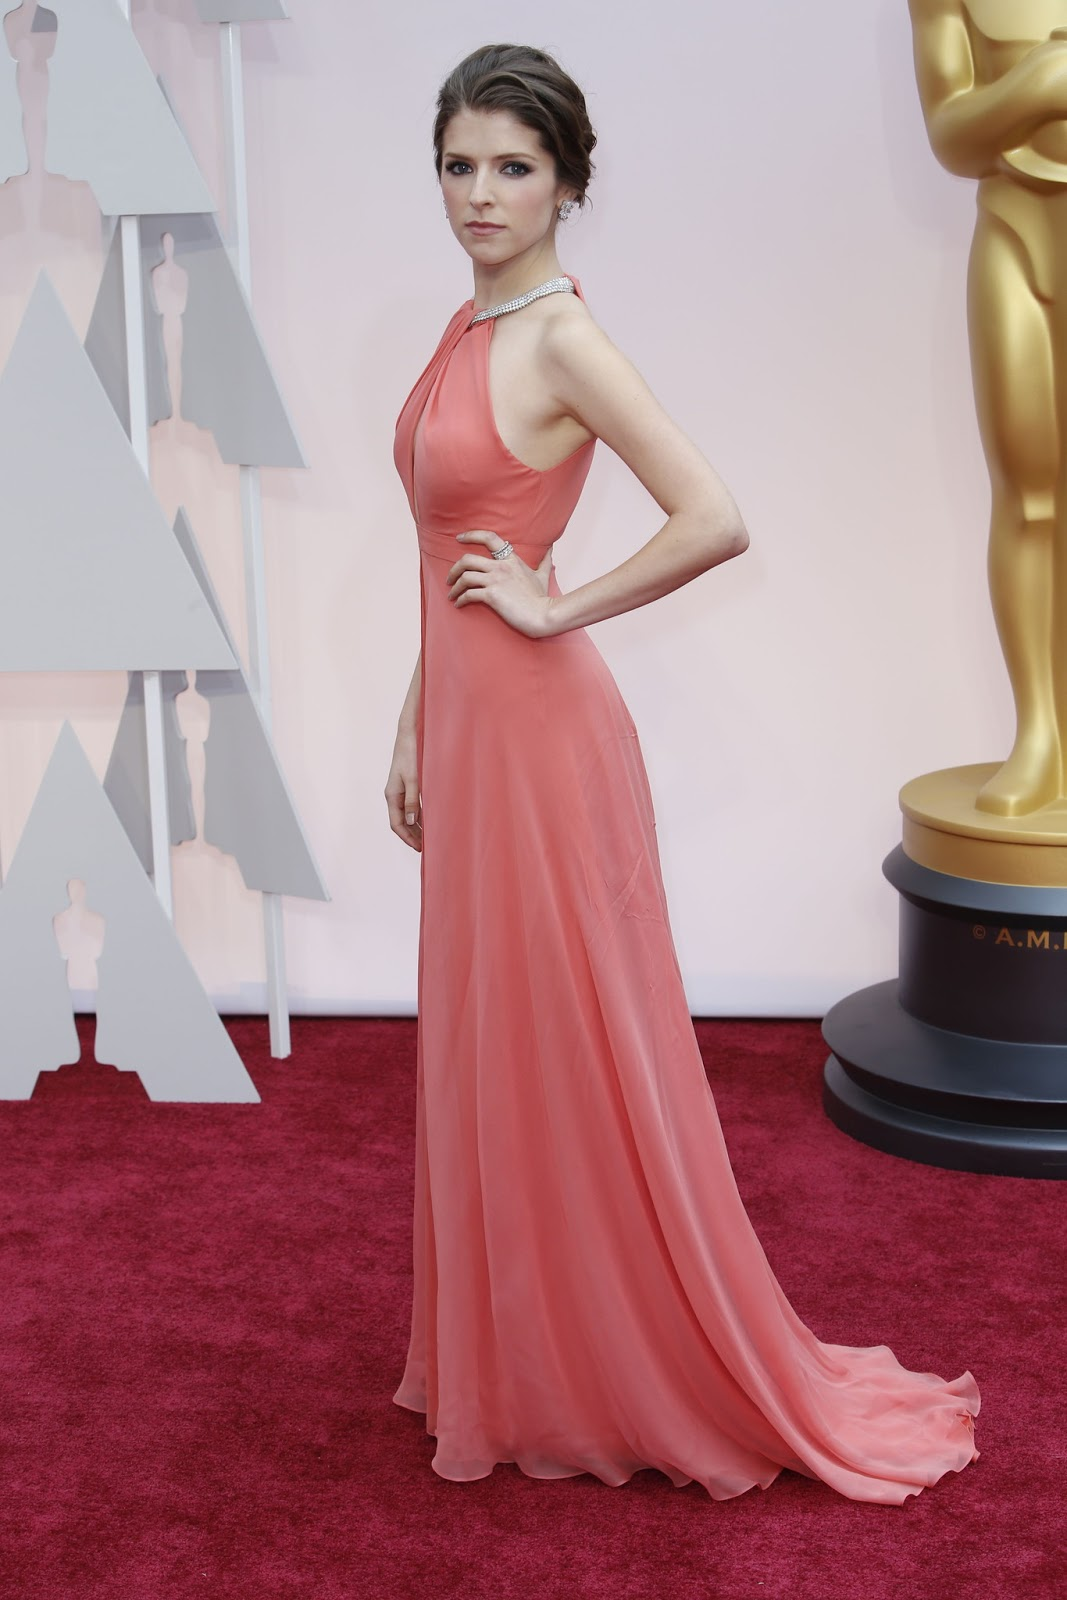 Anna Kendrick in Thakoon at the Oscars 2015